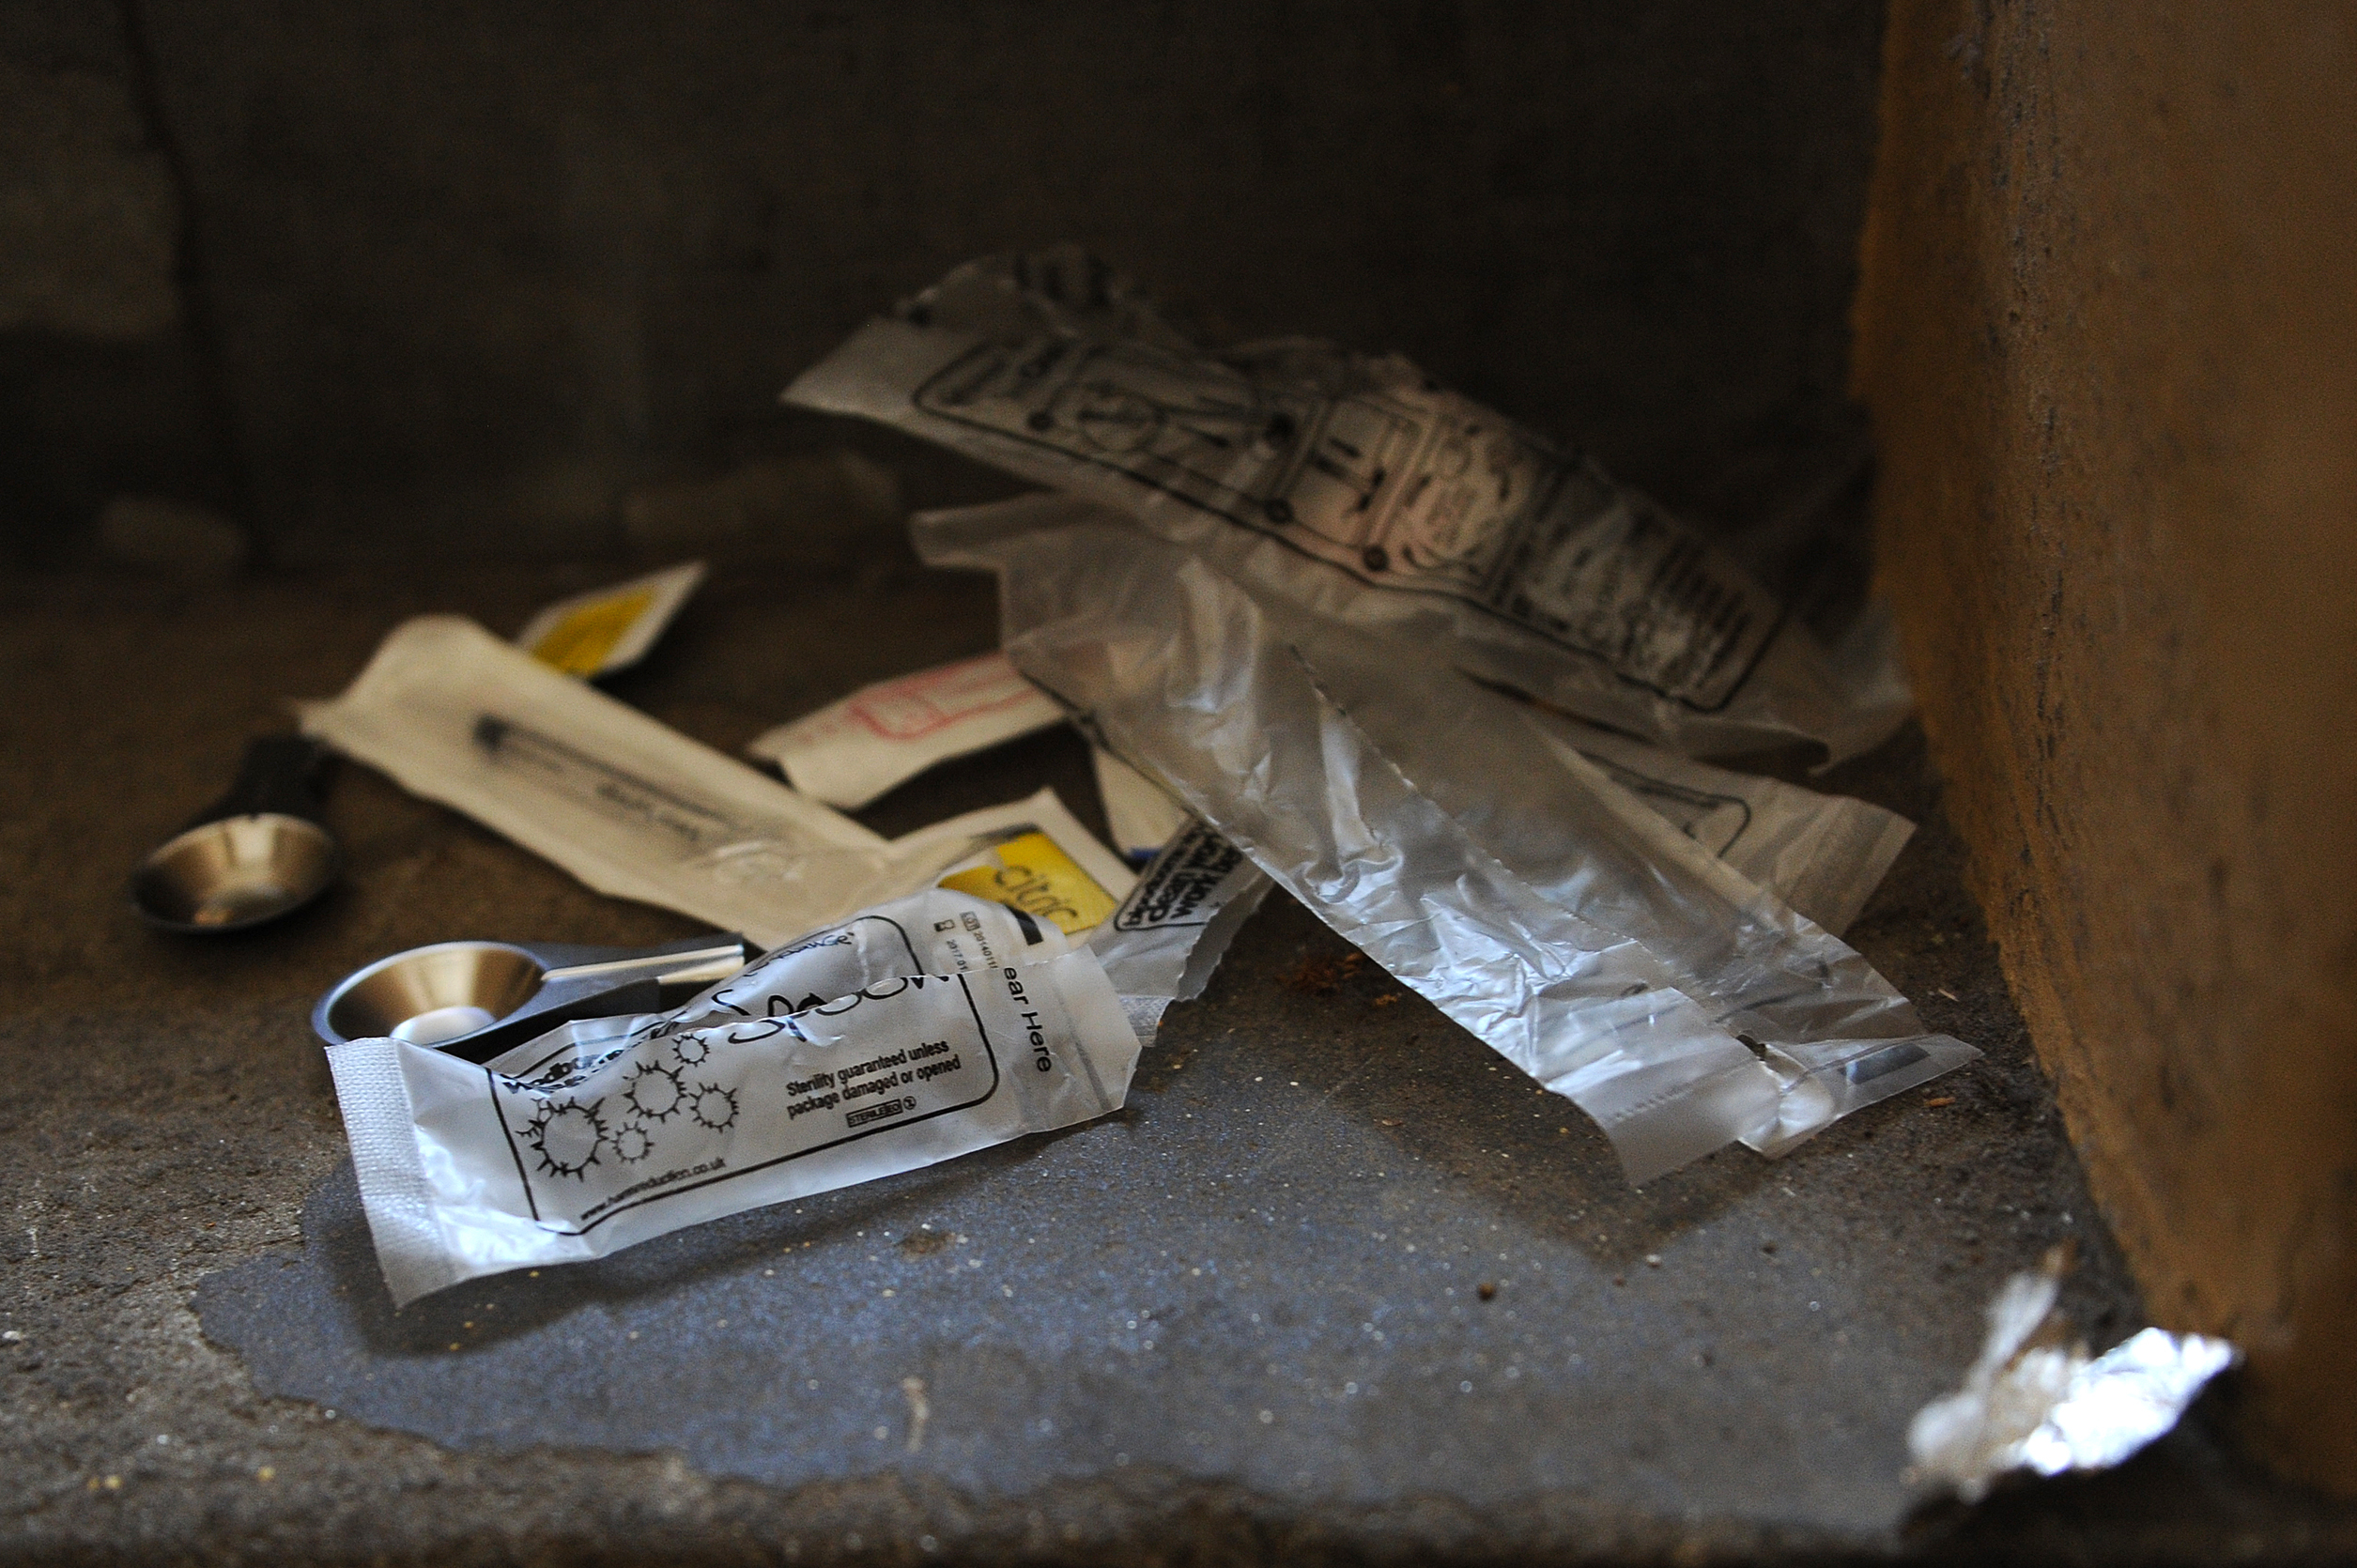 Drug equipment abandoned by a heroin addict in a Dundee stairwell.